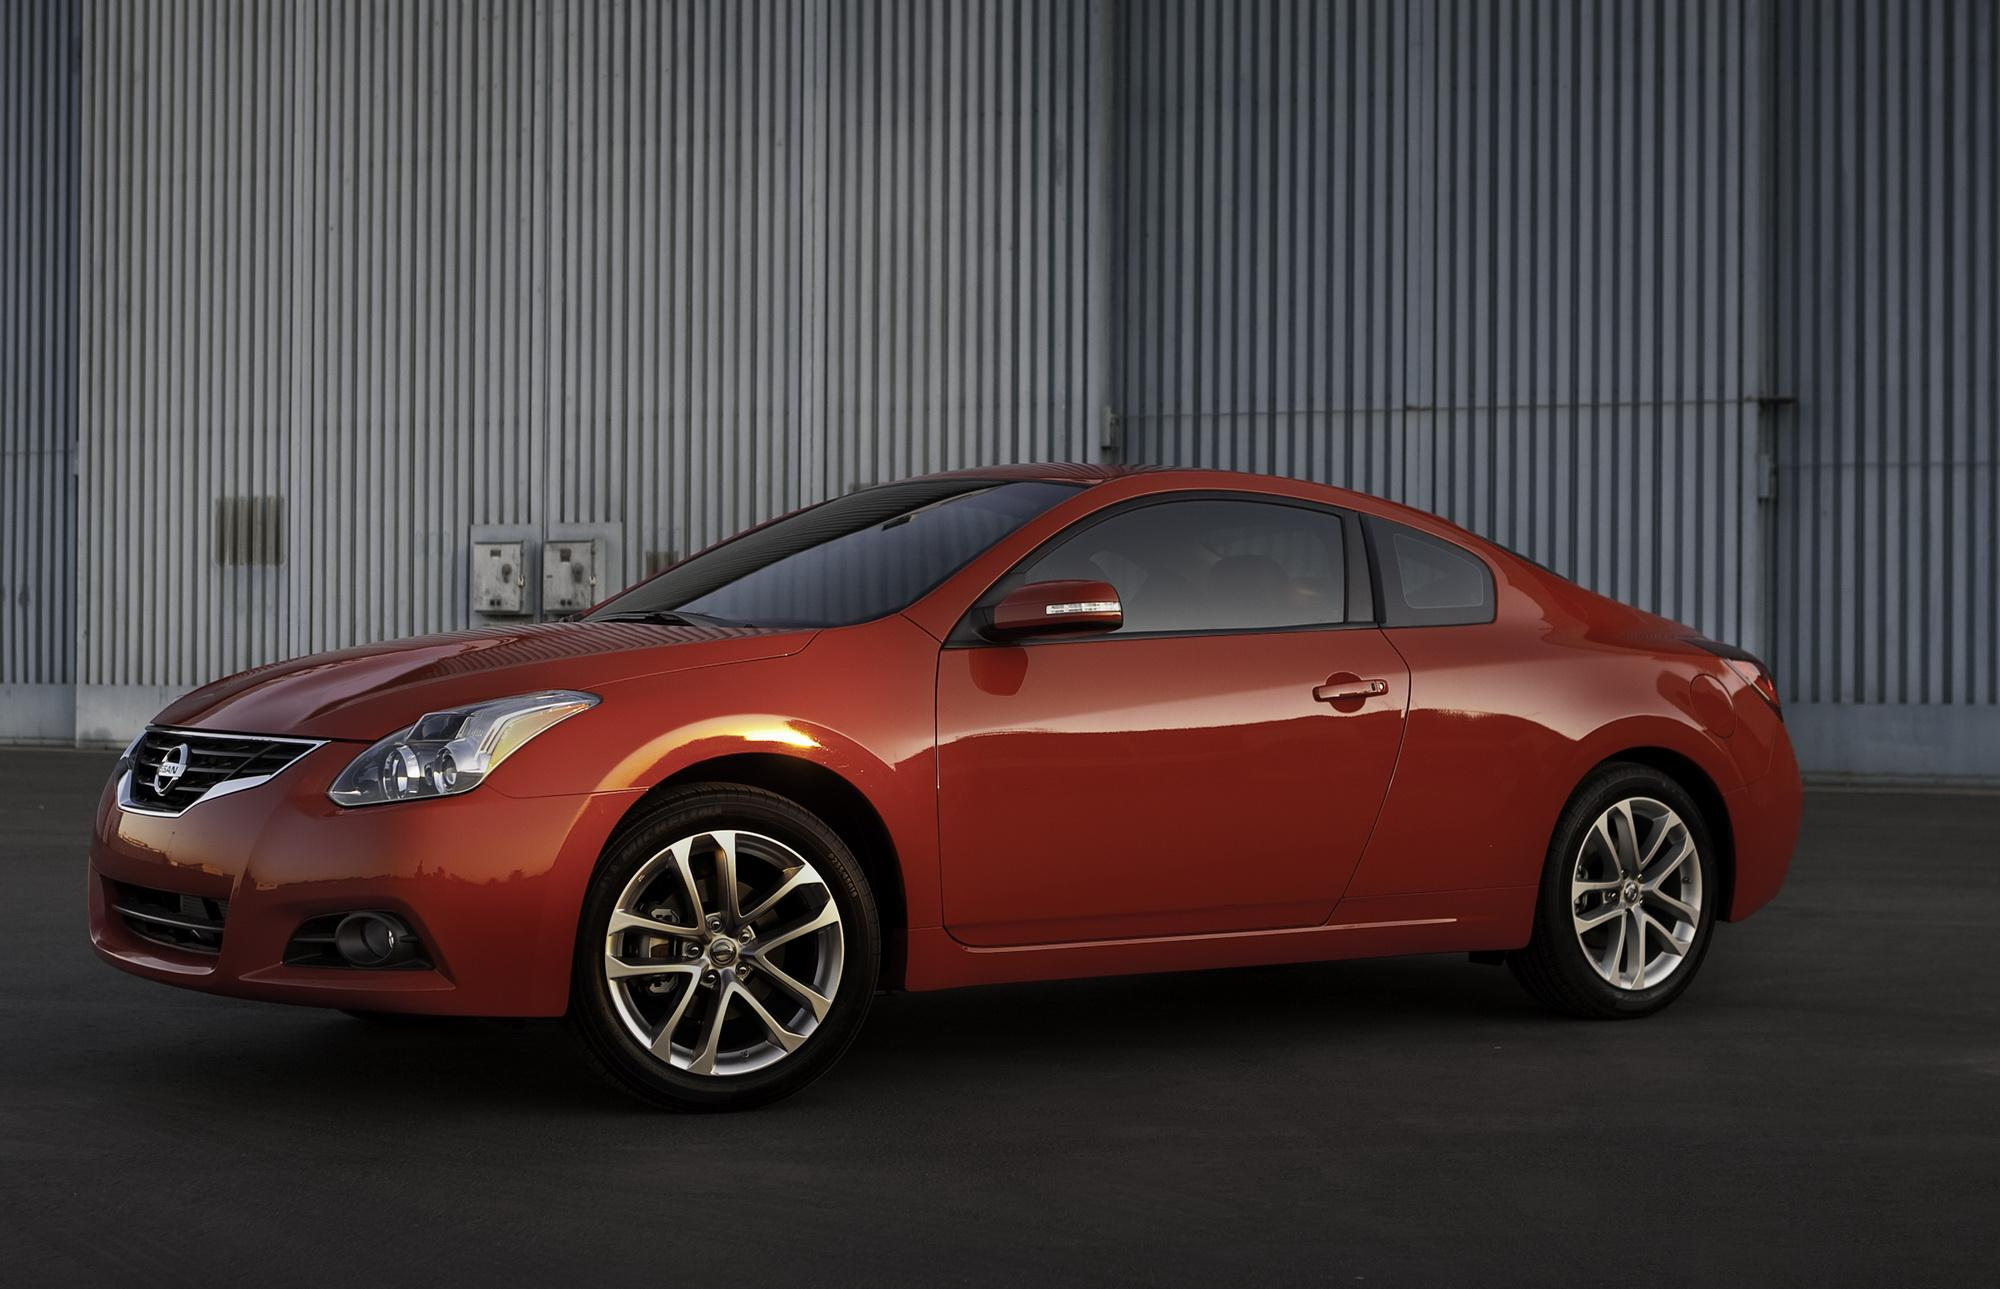 2010 Nissan Altima Coupe | Top Speed